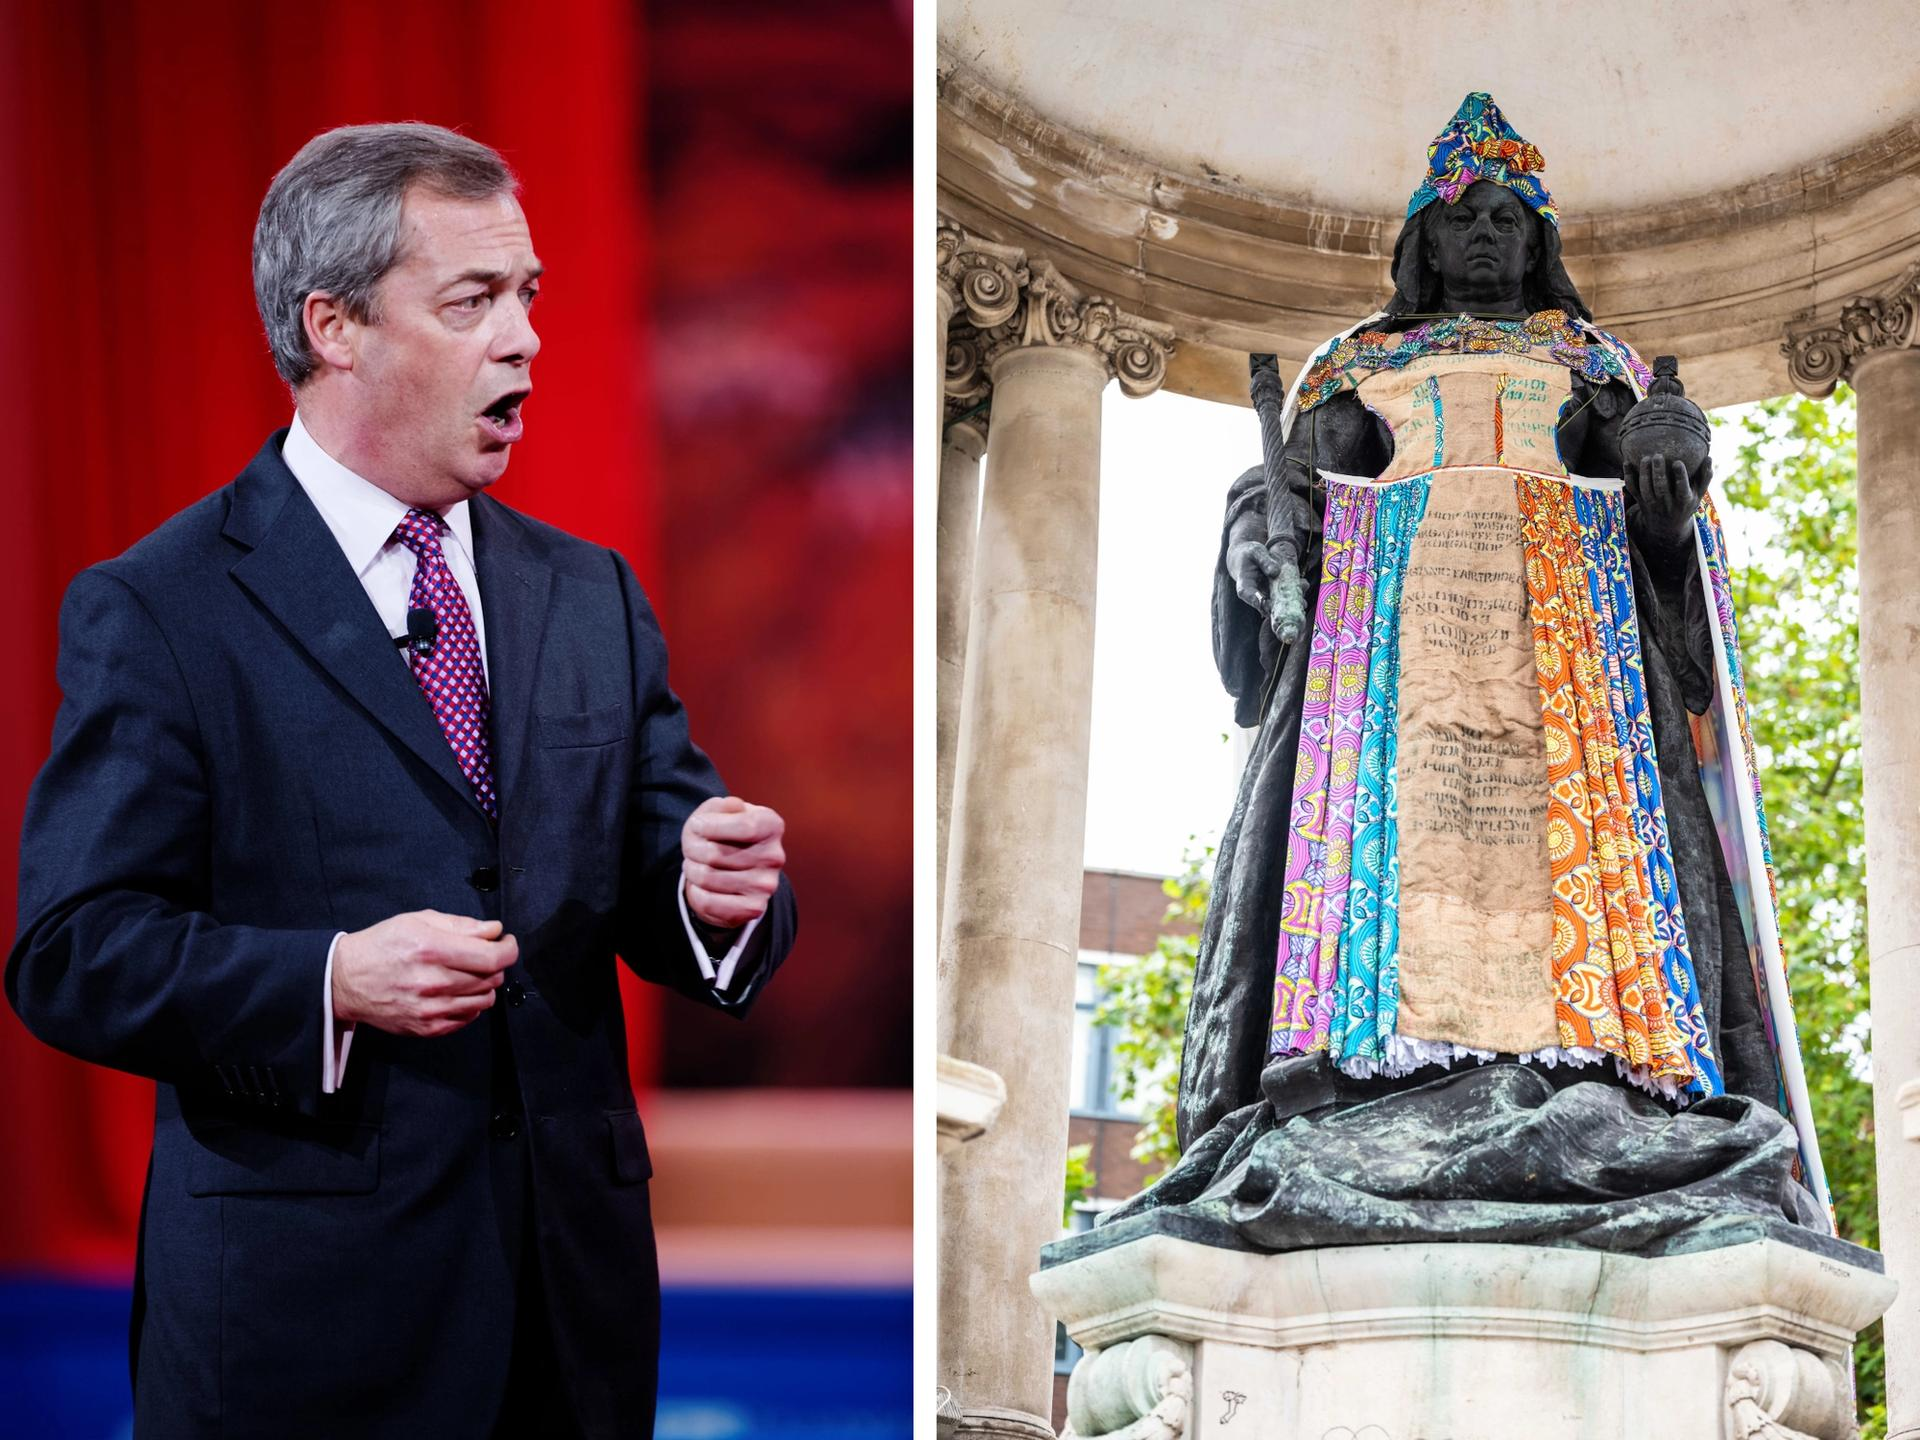 Nigel Farage (left) blasted Liverpool's art project dressing public statues in items that addressed the UK's slavery history Farage: Michael Vadon. Queen Victoria: photo: David Edwards, courtesy of Sky Arts and Culture Liverpool